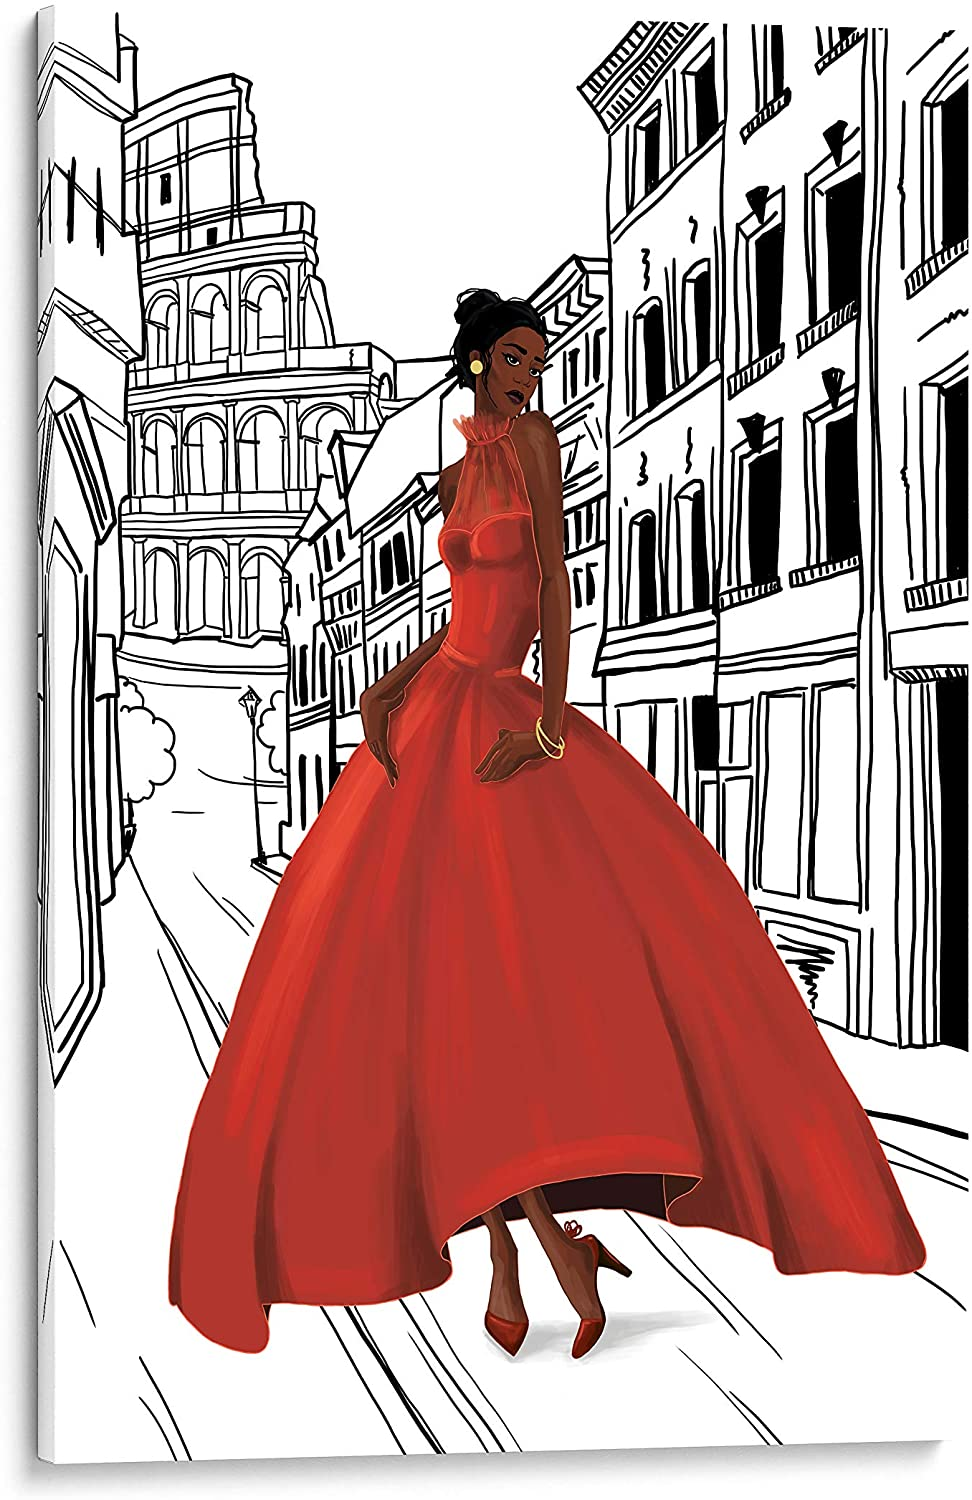 INTALENCE ART Glamour Fashion Woman Canvas Wall Art Feminine Home Decor, 12x18in Girl in Rome Italy Picture Canvas Print, Decoration for Bedroom Living room Office. Gallery Wrap Artwork Easy to Hang.